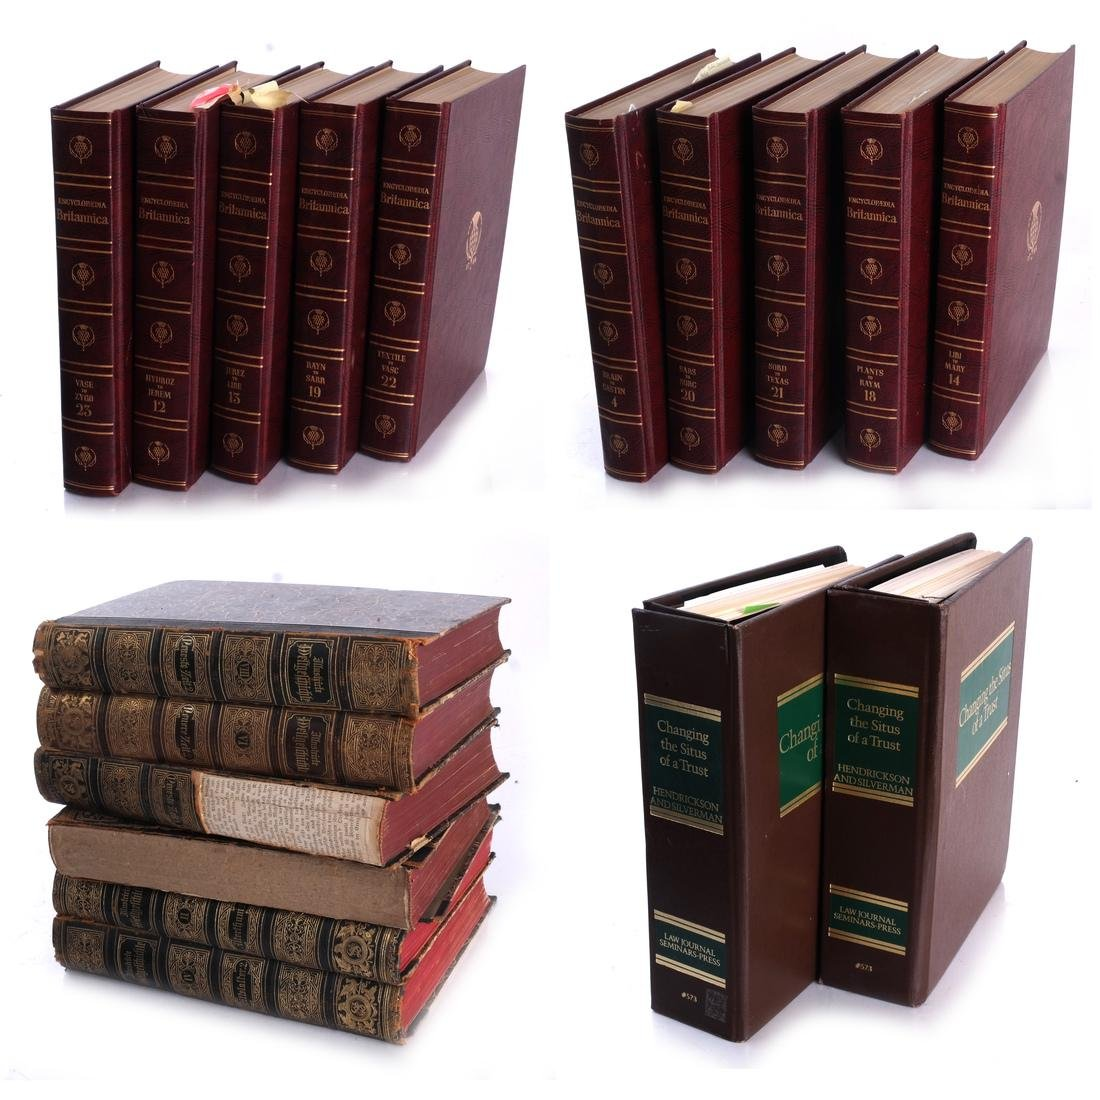 Books: Encyclopedia Britannica, Other